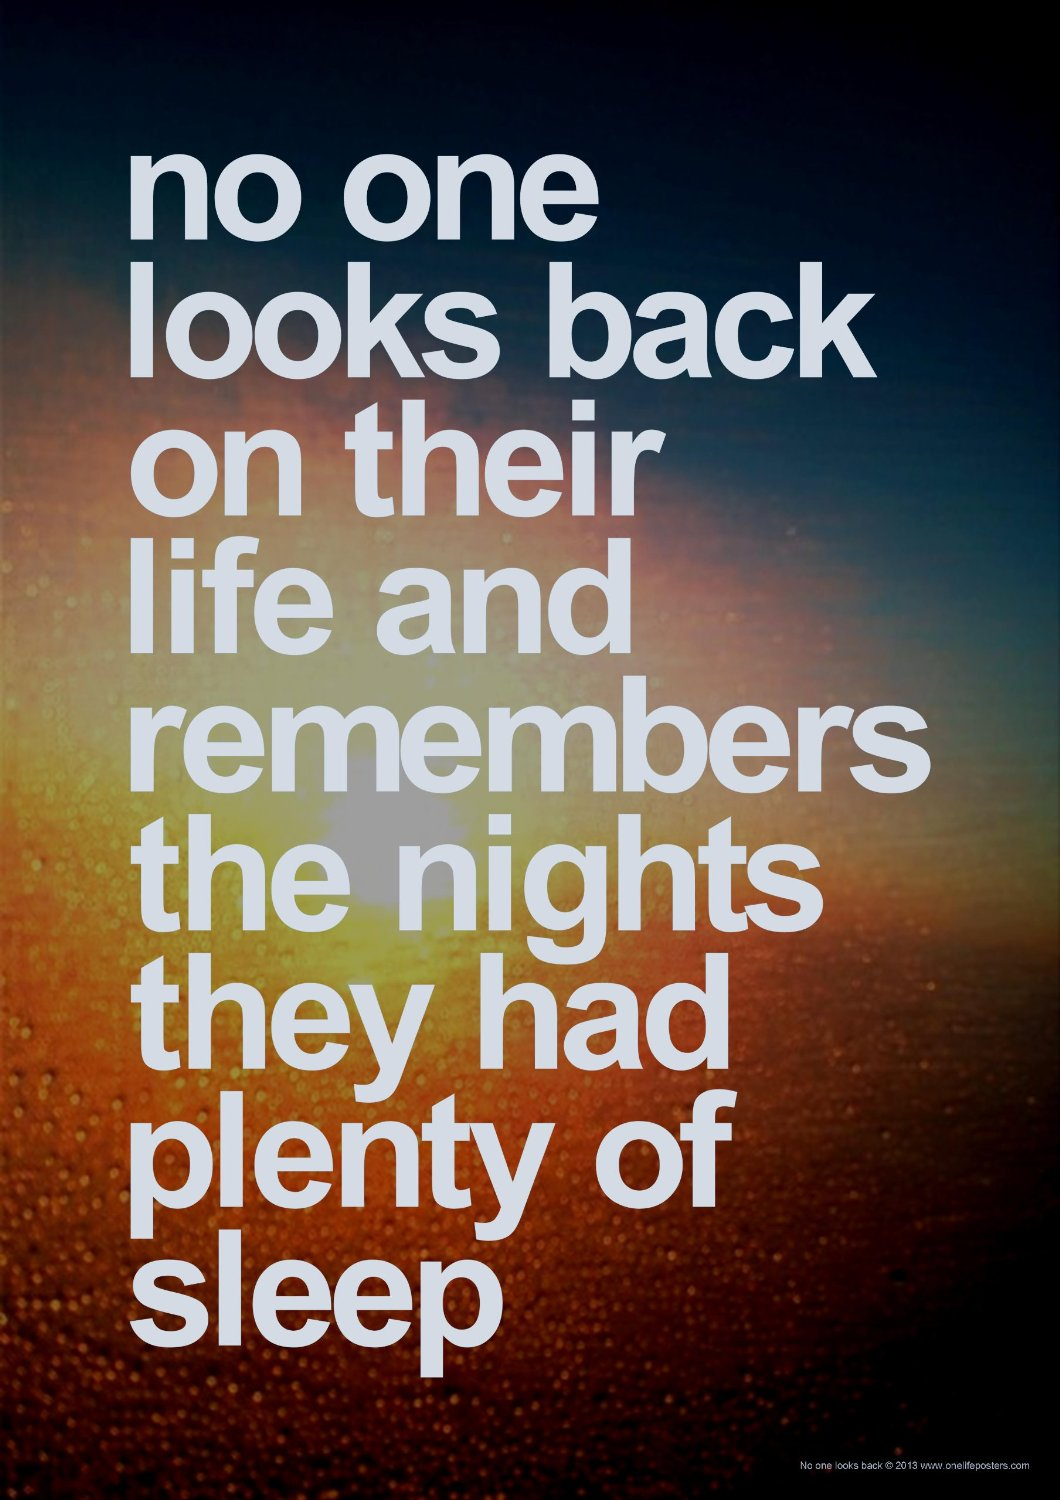 No One Remembers Nights Plenty Sleep Life Daily Quotes Sayings Pictures